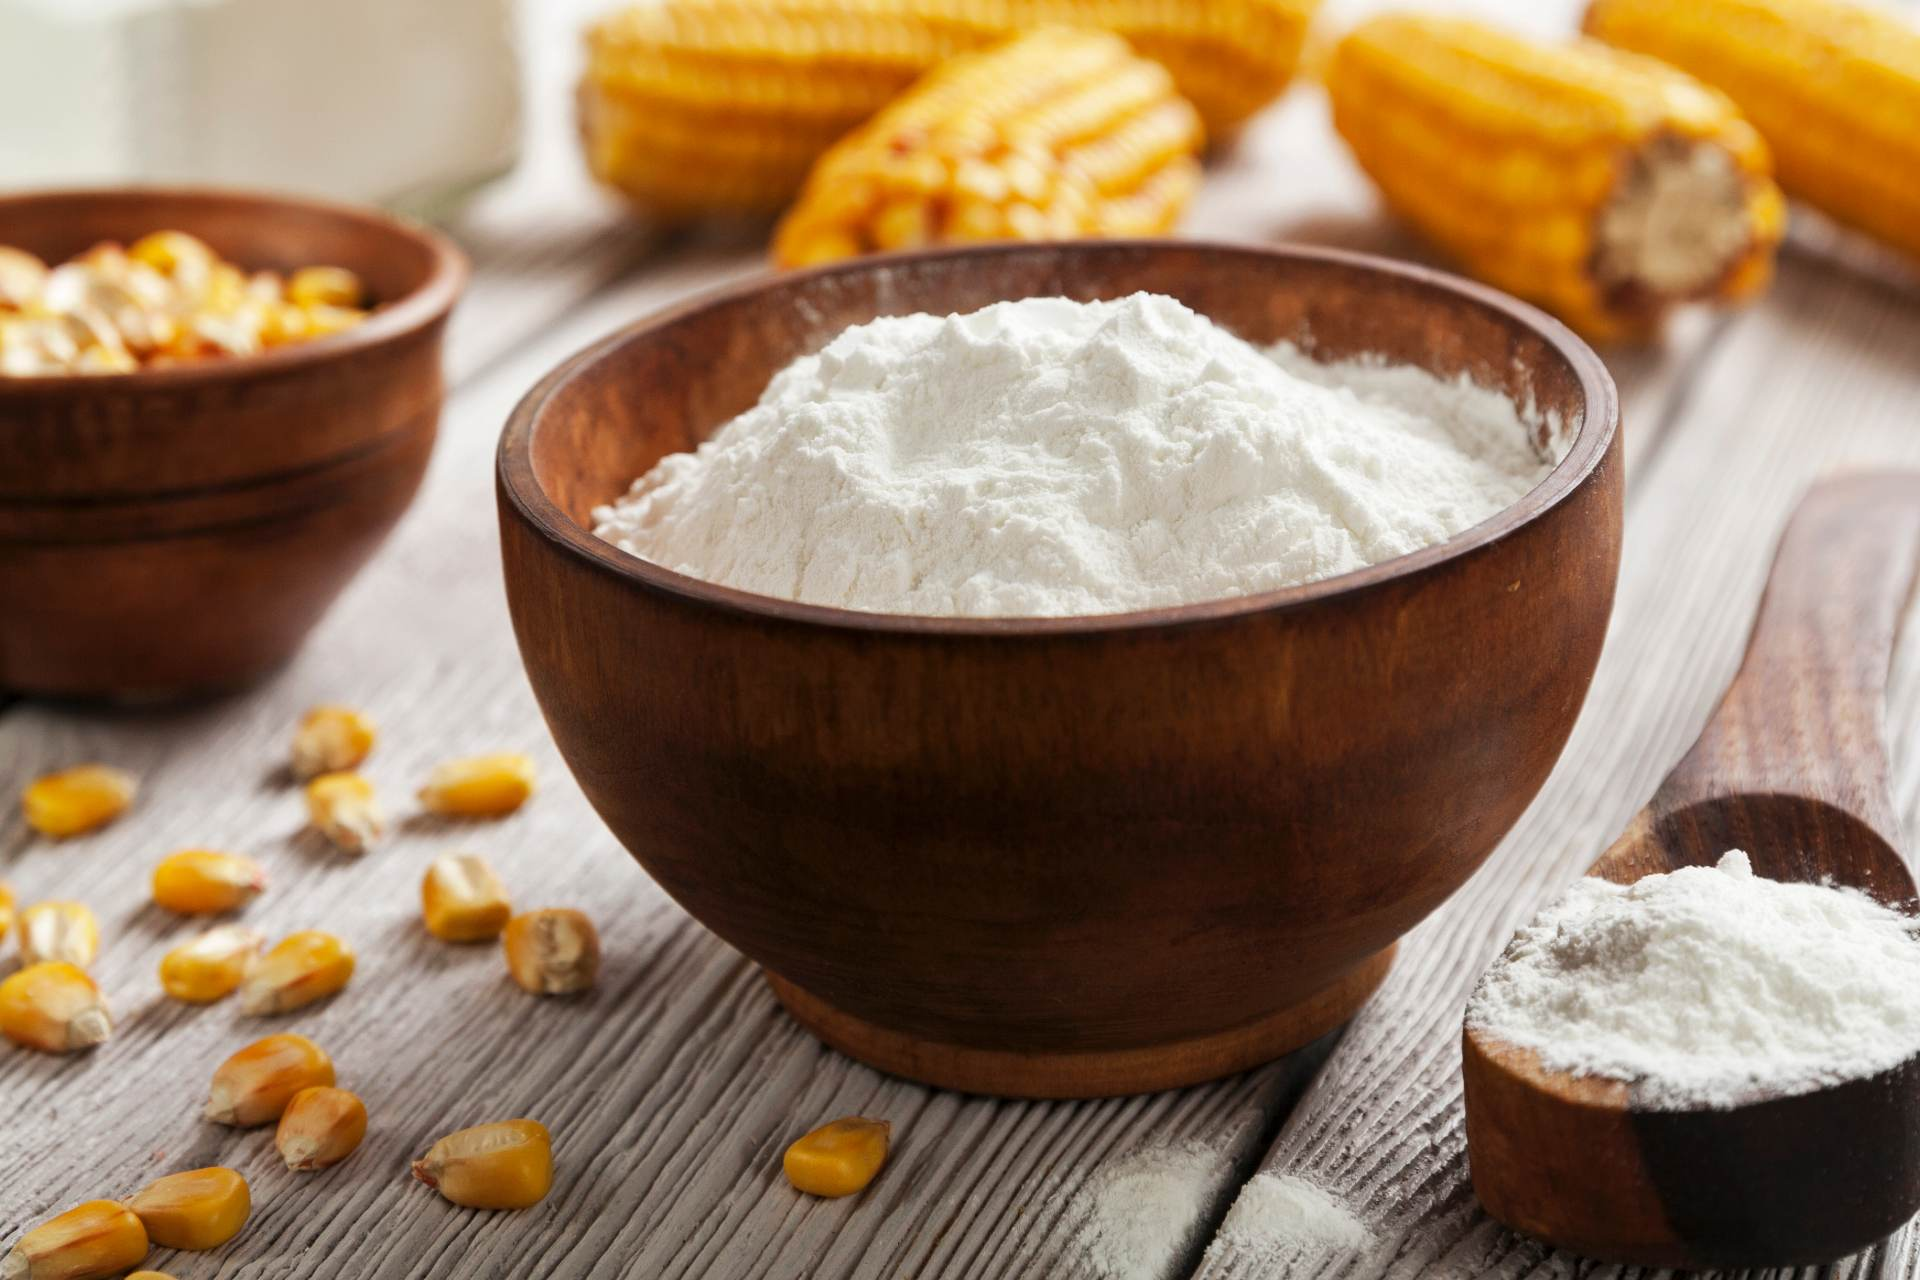 bowl of starch ©iStock